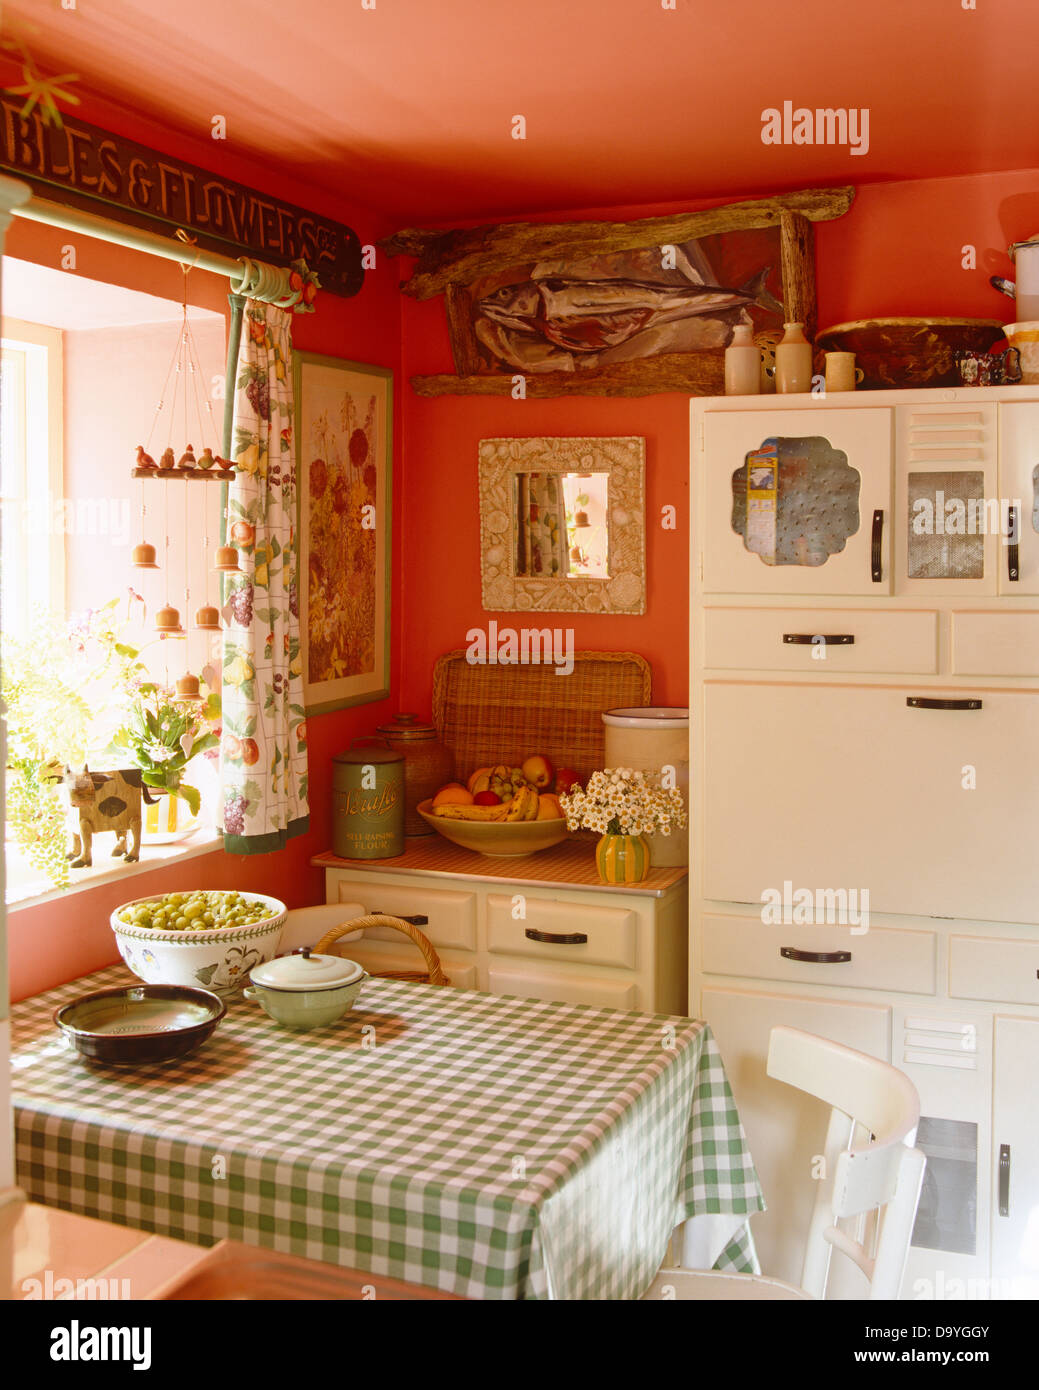 Green Checked Cloth On Table Beneath Window In Red Country Kitchen With  White Painted Fifties Cupboard